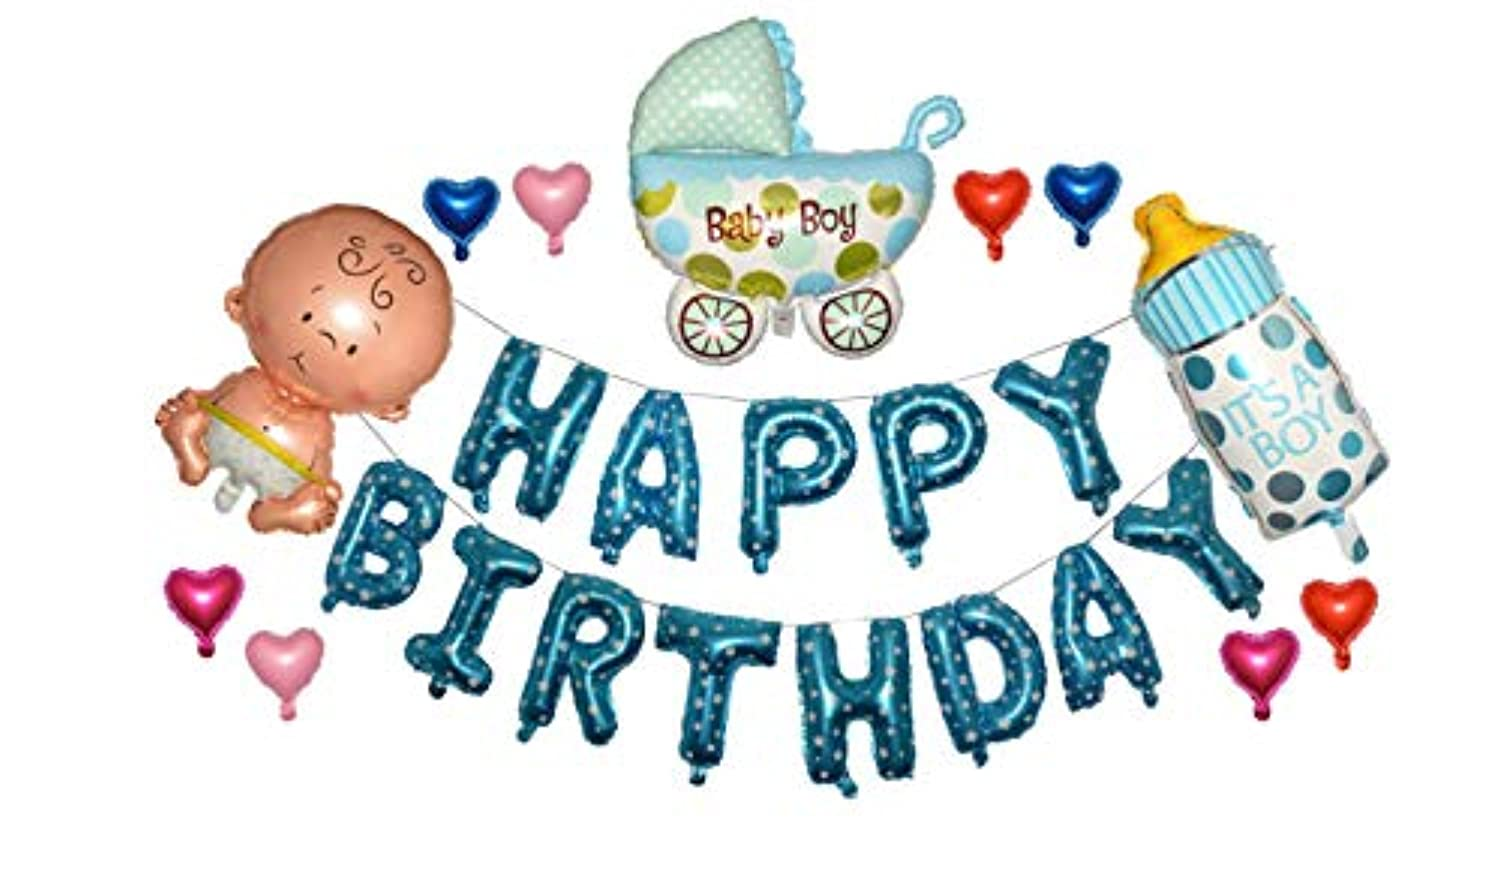 Happy Birthday Newborn Baby Boy Baby Shower First Birthday Party 14 inch Balloon Letters Decorations